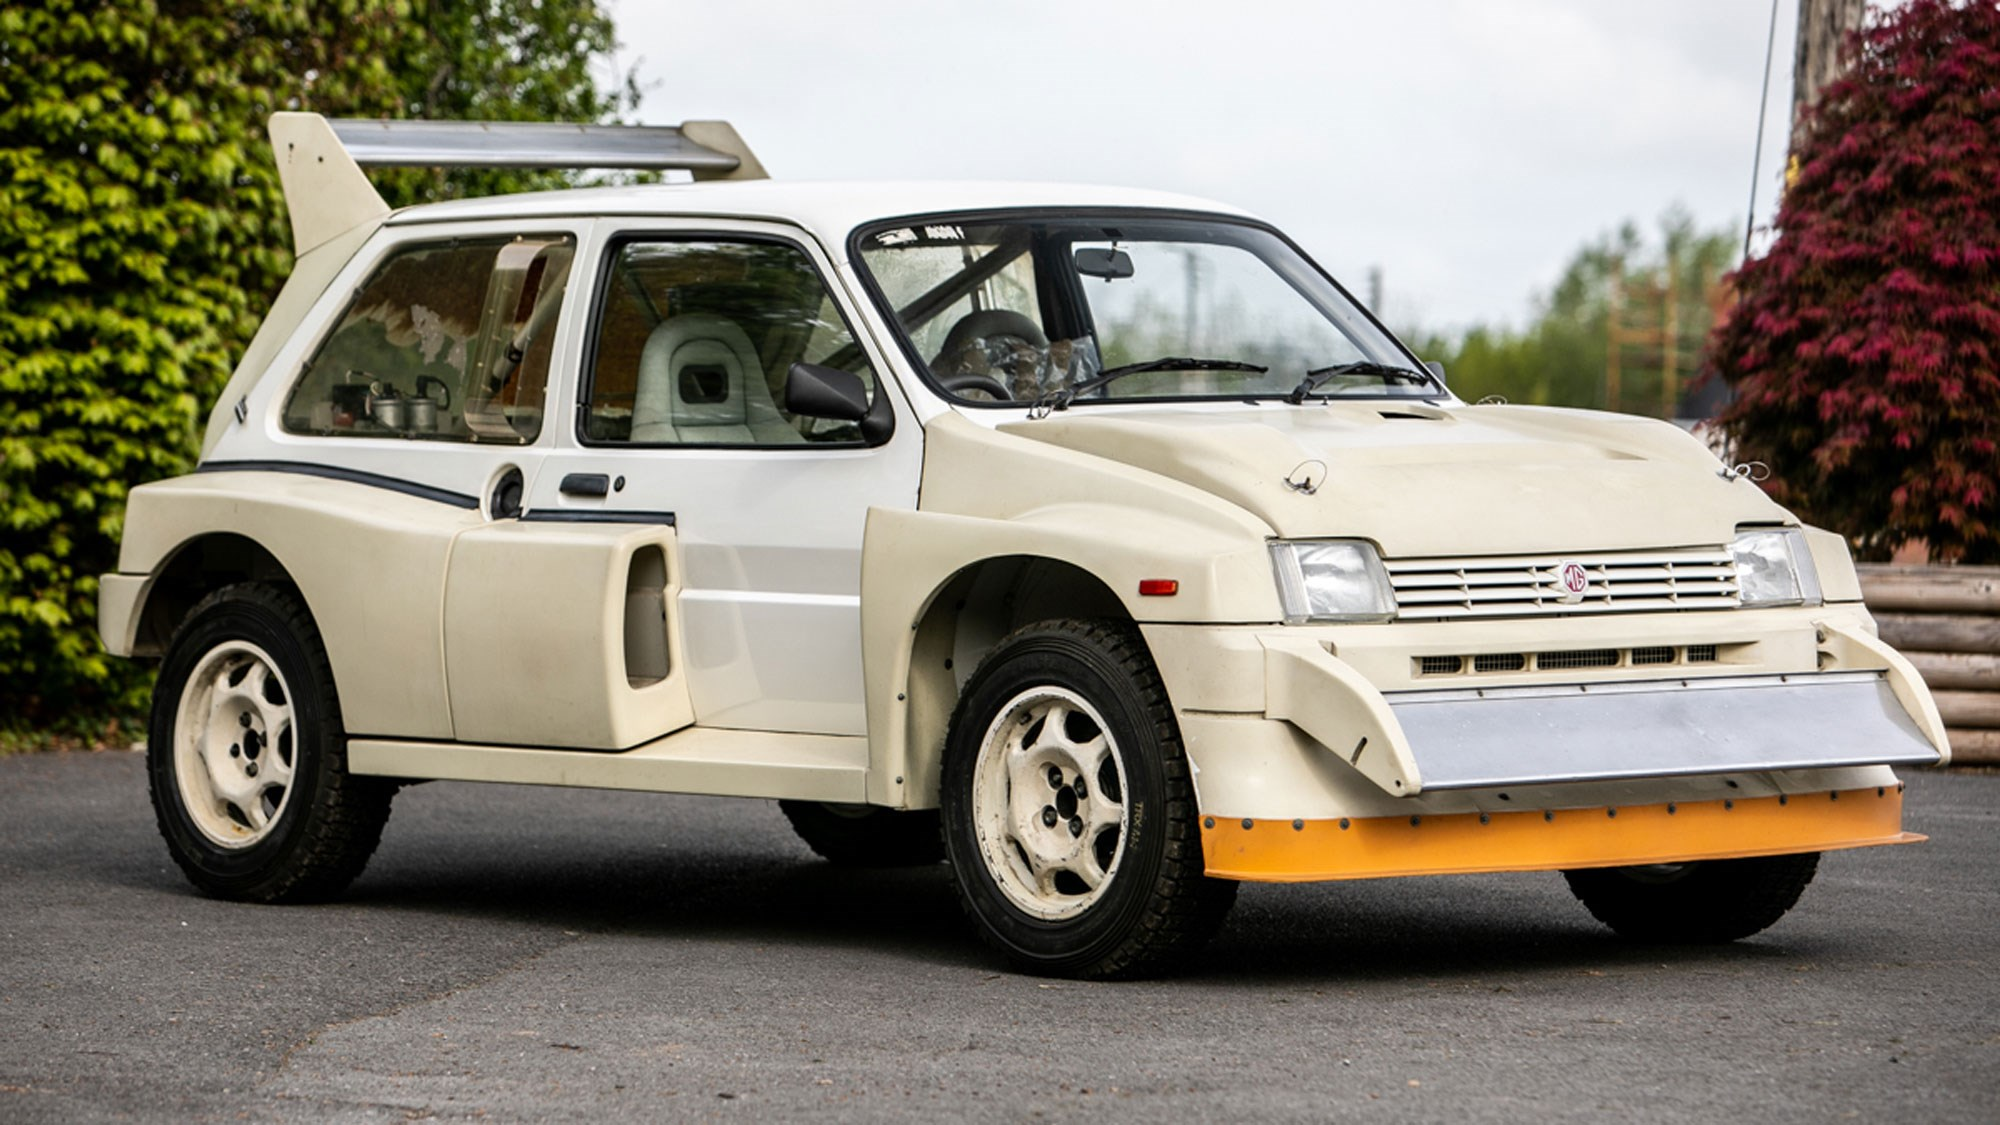 Metro 6R4: Pristine Group B Legend Up For Auction